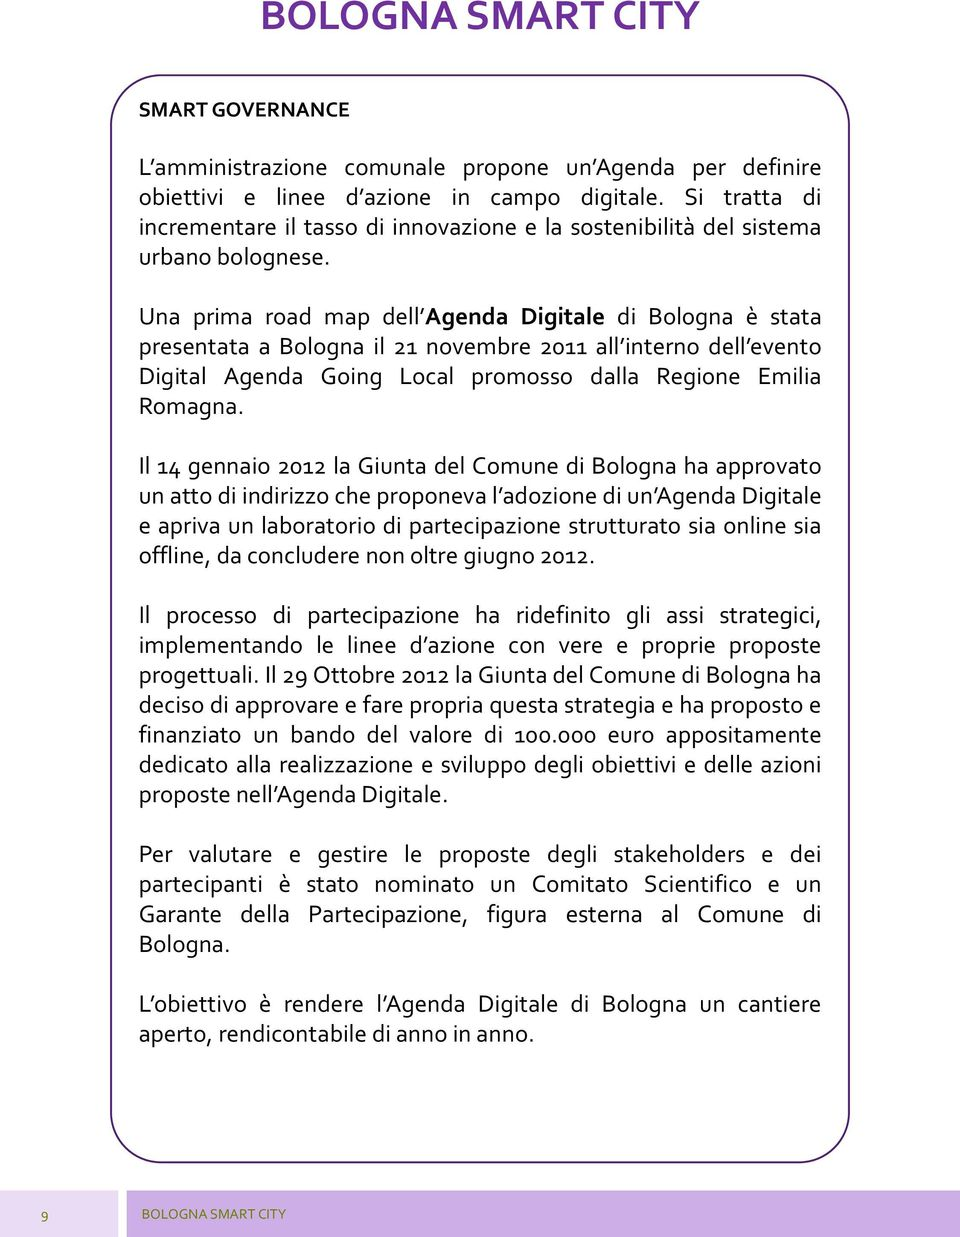 Una prima road map dell Agenda Digitale di Bologna è stata presentata a Bologna il 21 novembre 2011 all interno dell evento Digital Agenda Going Local promosso dalla Regione Emilia Romagna.